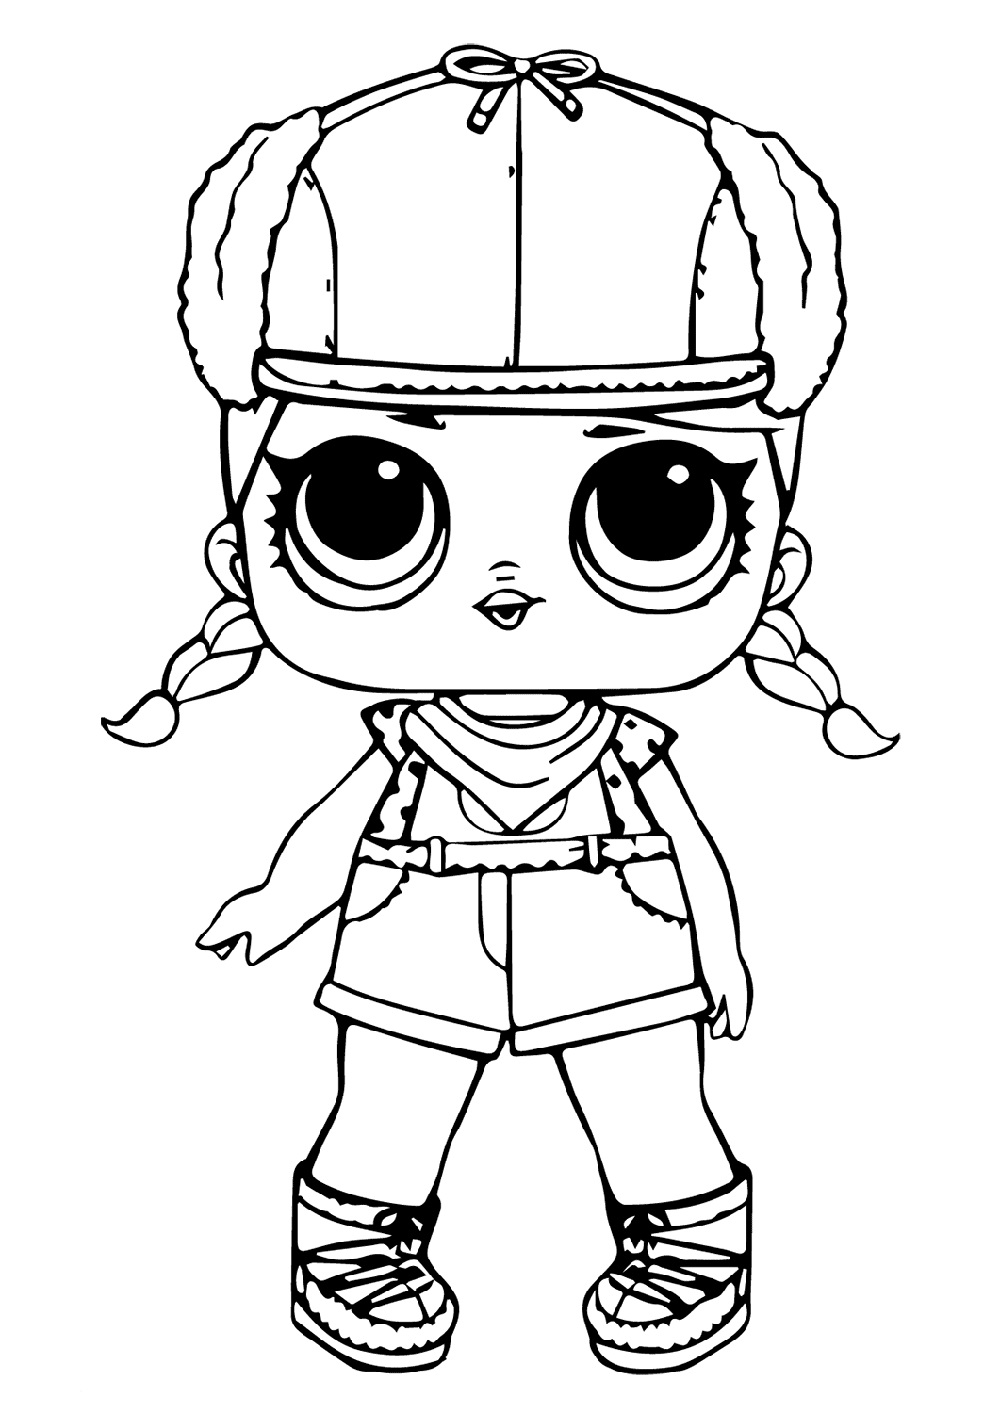 free printable lol coloring pages lol dolls coloring pages free printable lol dolls free lol pages printable coloring